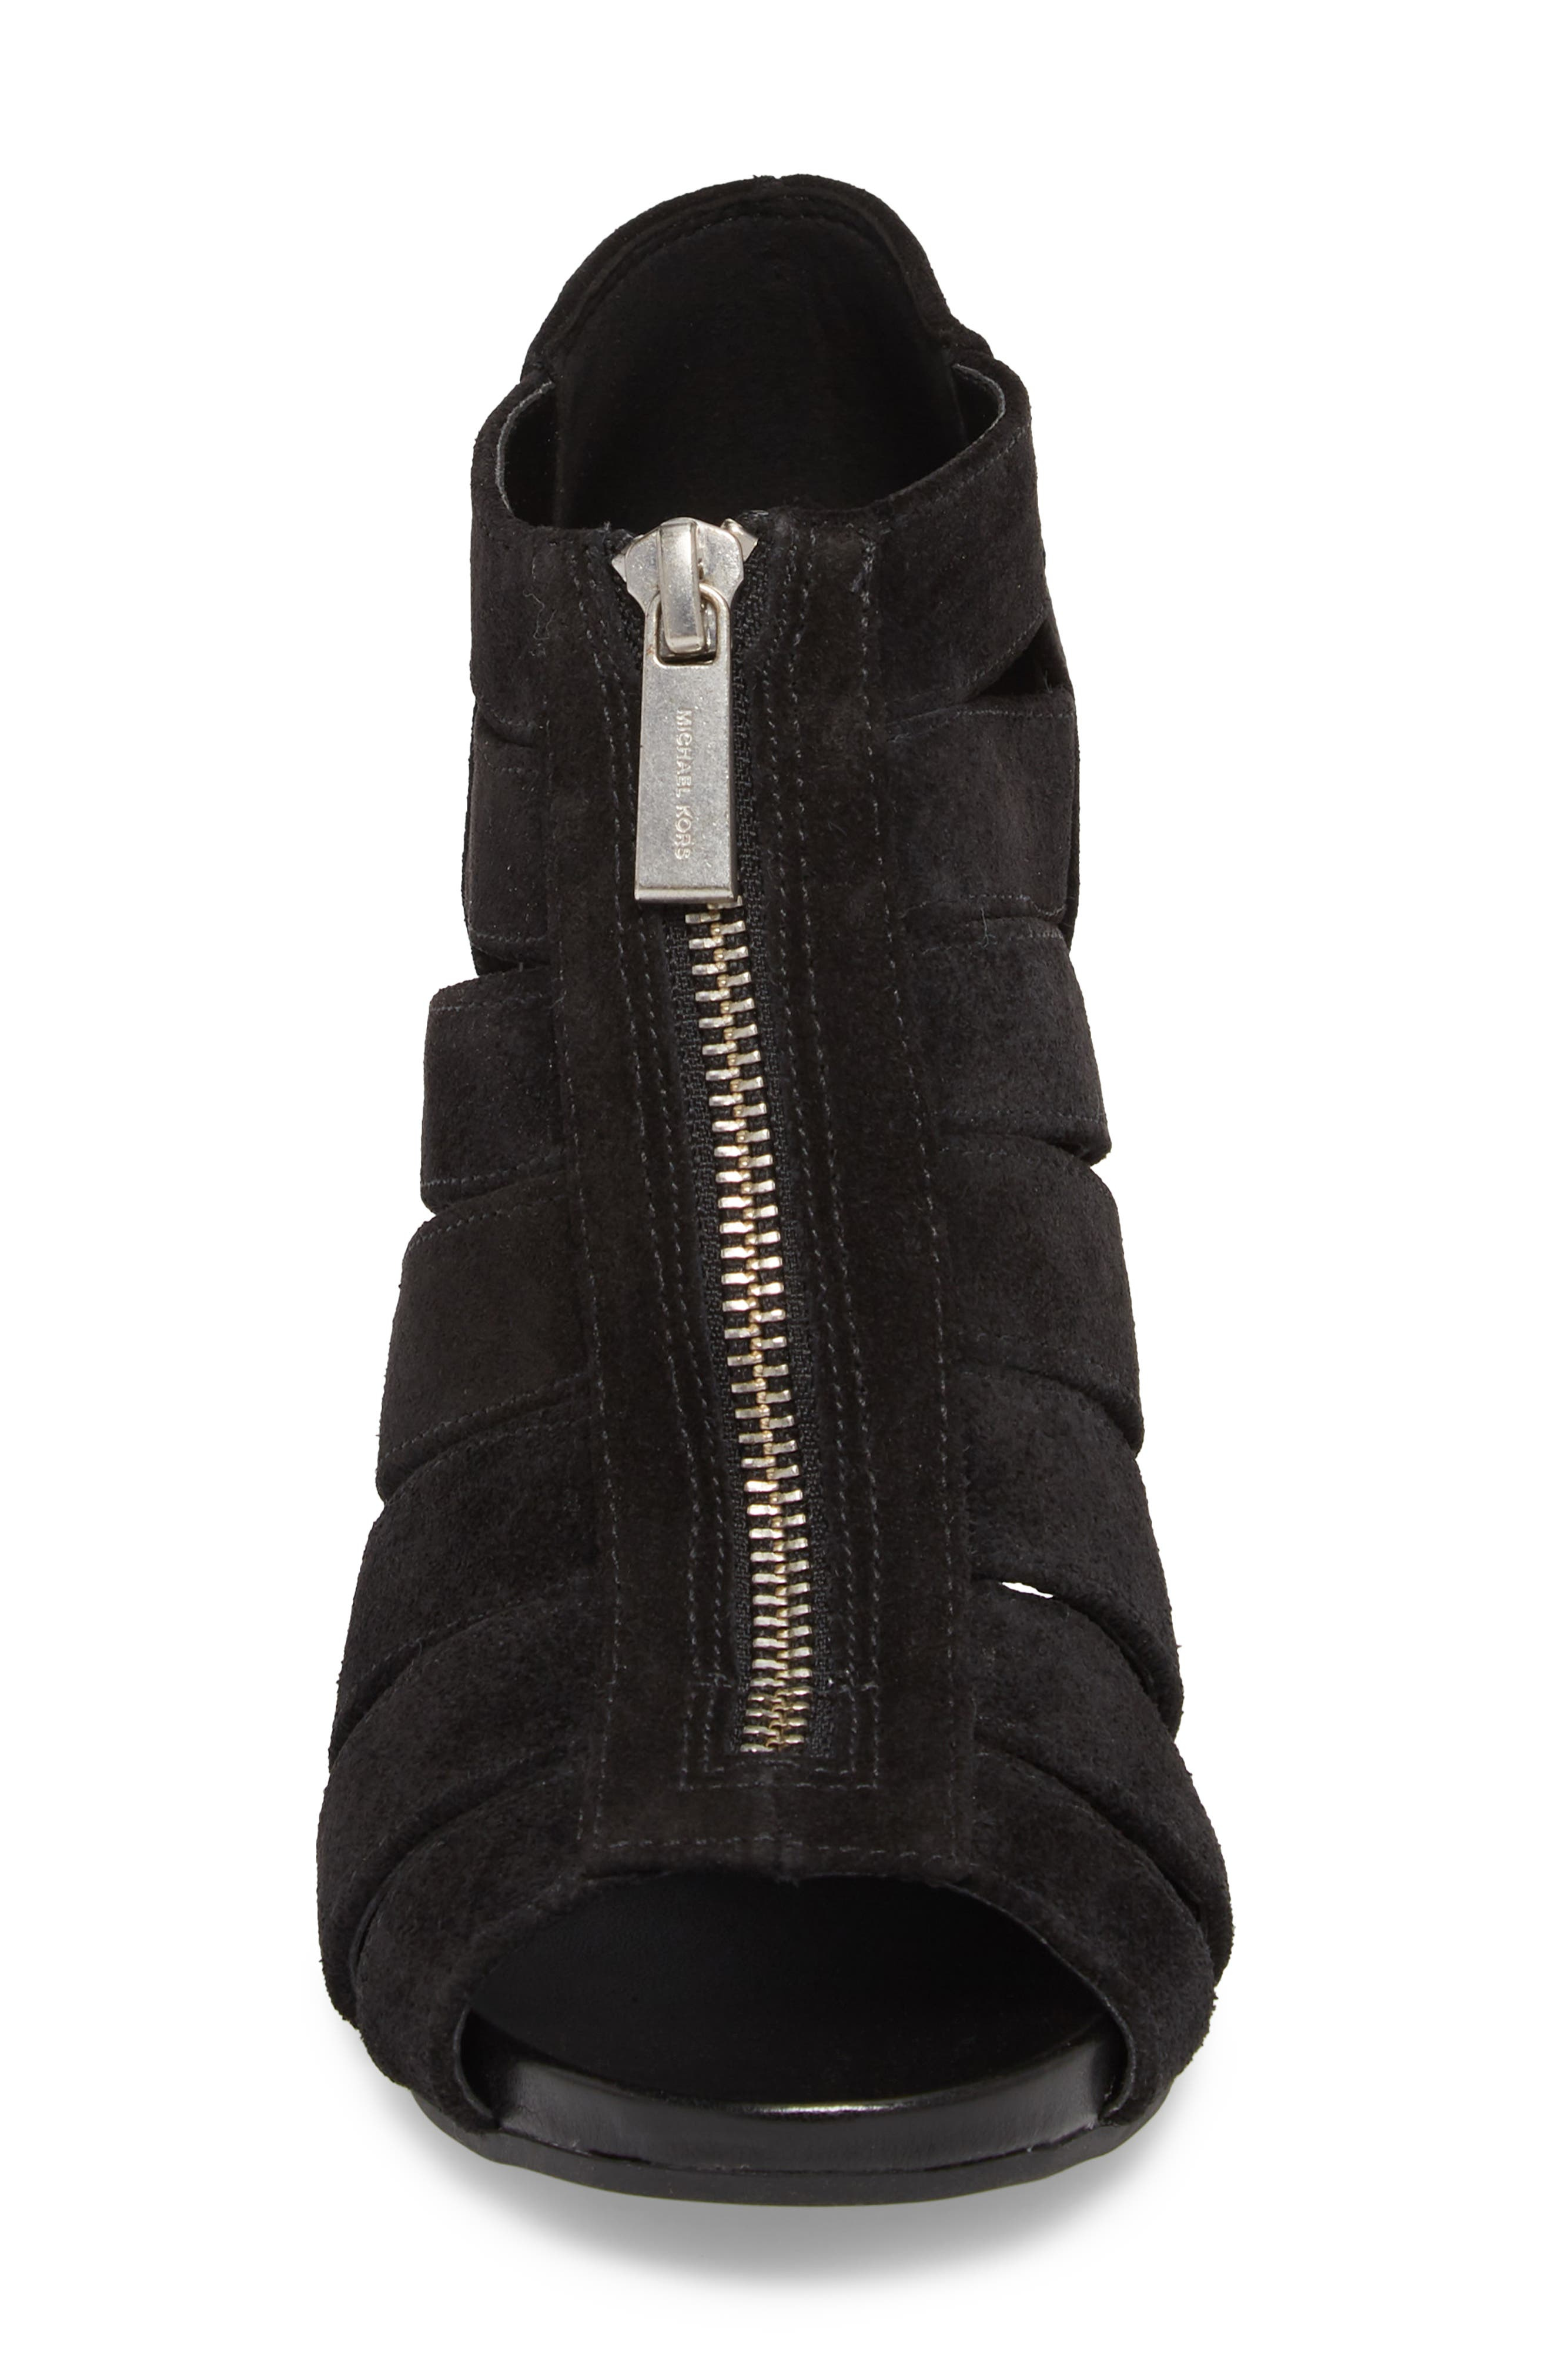 Sherry Cage Bootie,                             Alternate thumbnail 8, color,